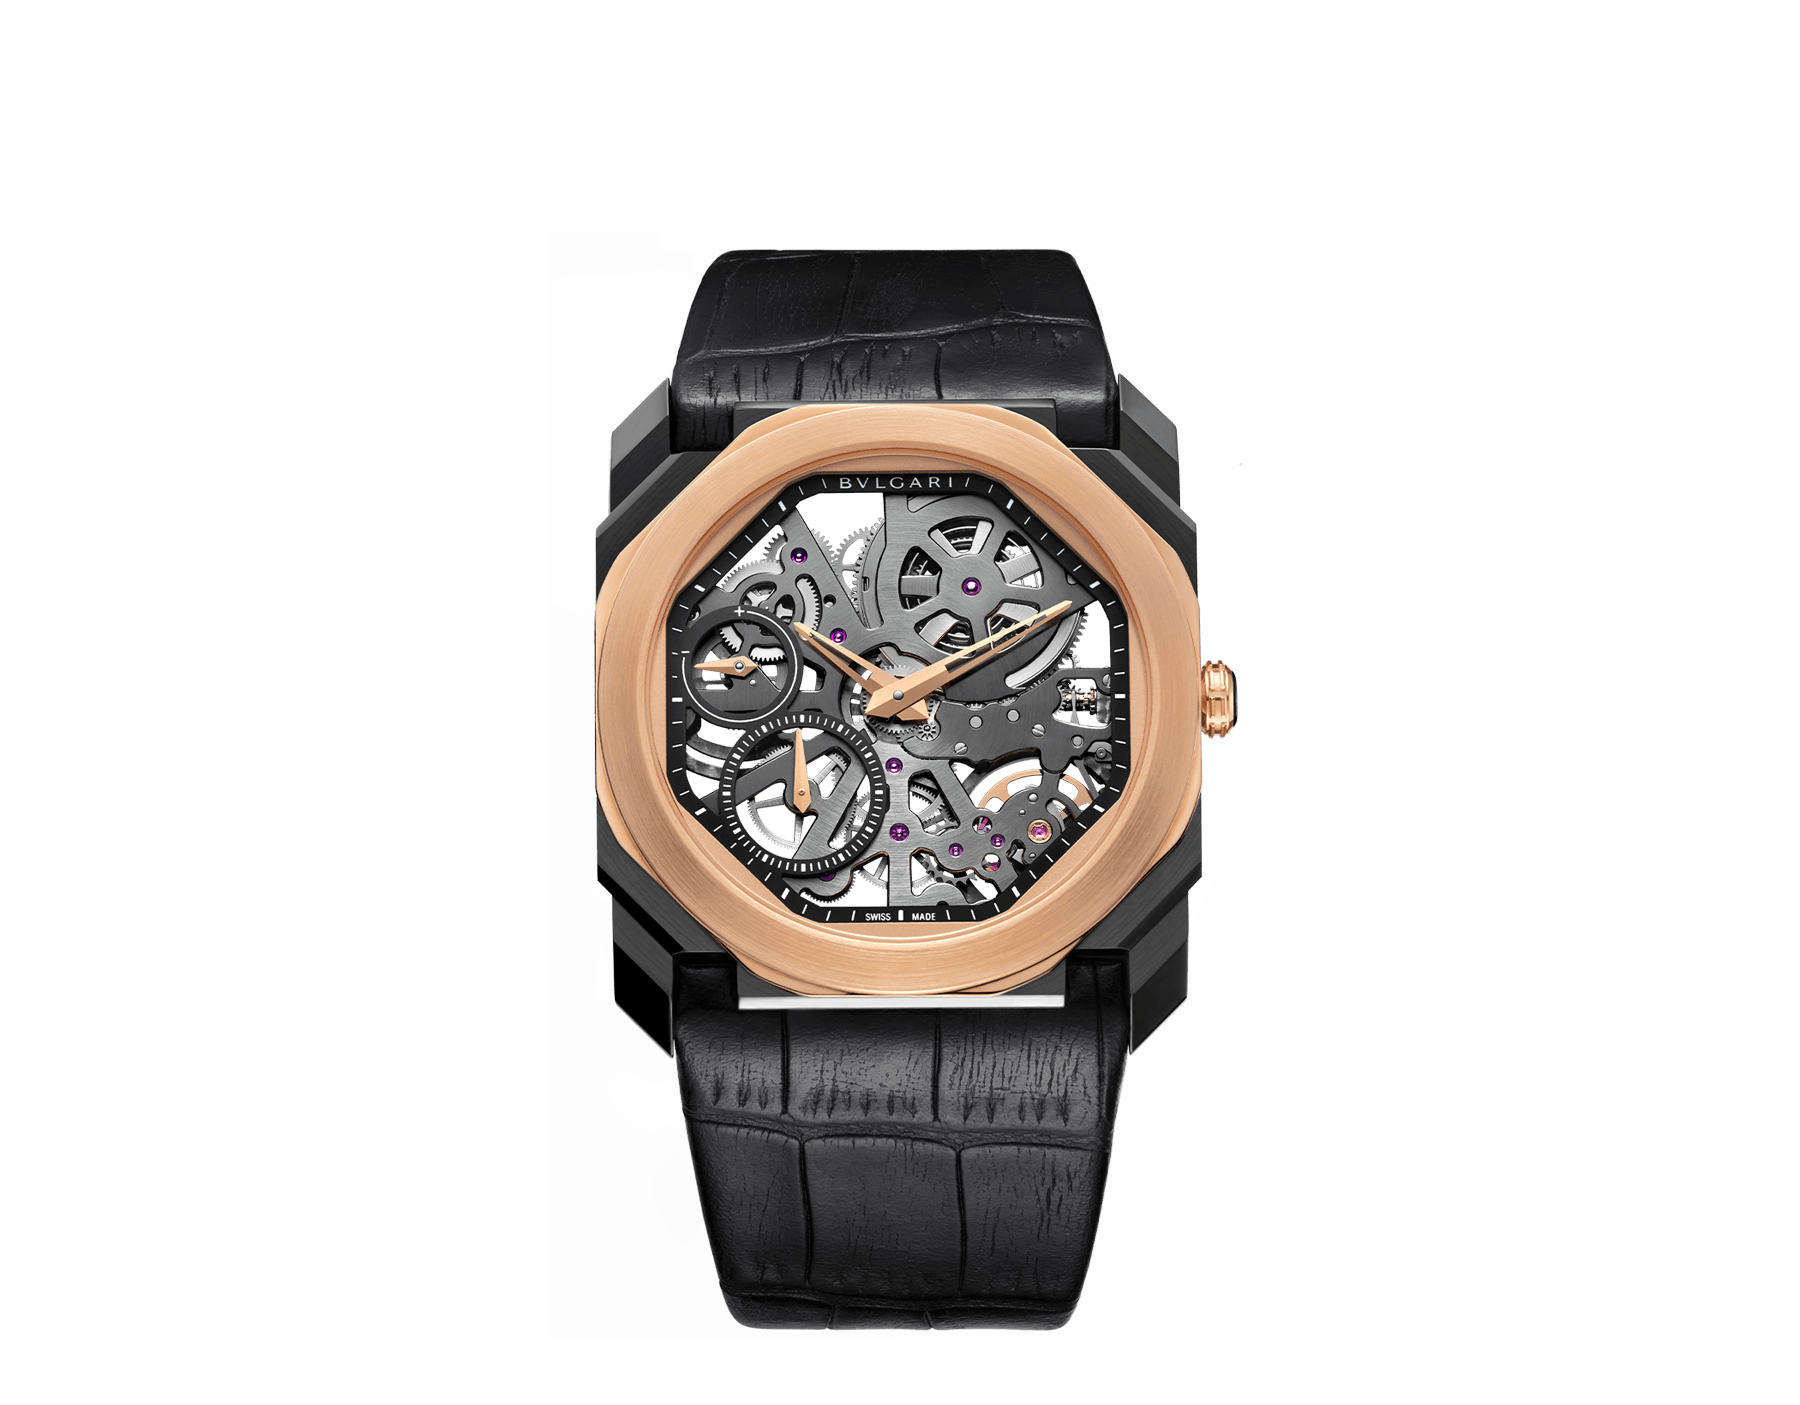 Octo Finissimo watch with extra thin mechanical skeletonized manufacture movement, manual winding, small seconds and power reserve indication, stainless steel case treated with black Diamond Like Carbon, 18 kt rose gold bezel, transparent dial and black alligator bracelet. 102469 image 1